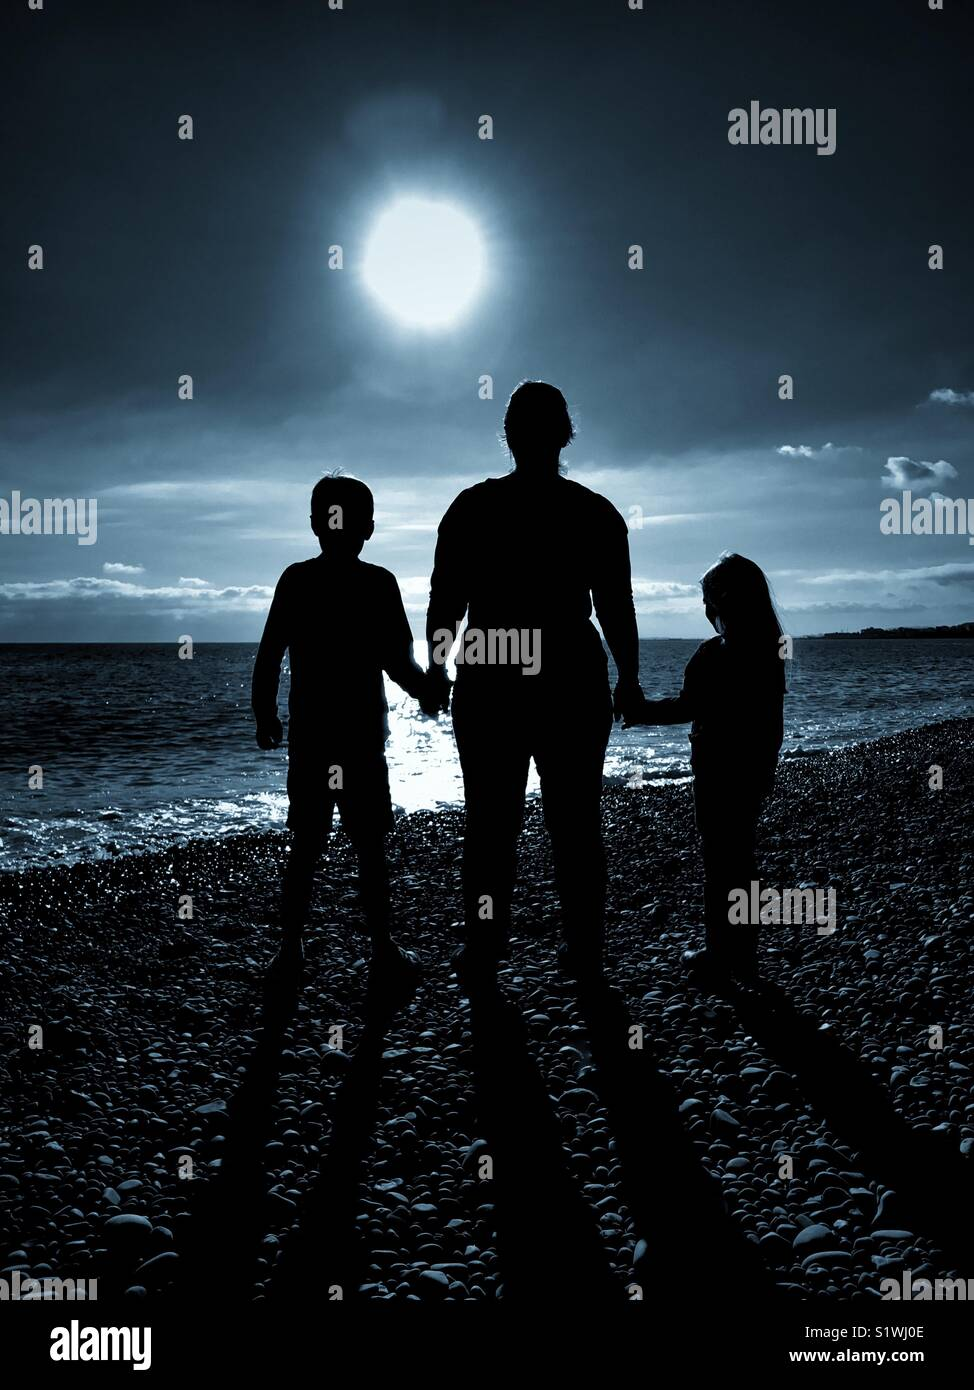 The silhouettes of 3 people - a Mother holds the hands of her 2 children as they all look forward towards a bright Stock Photo